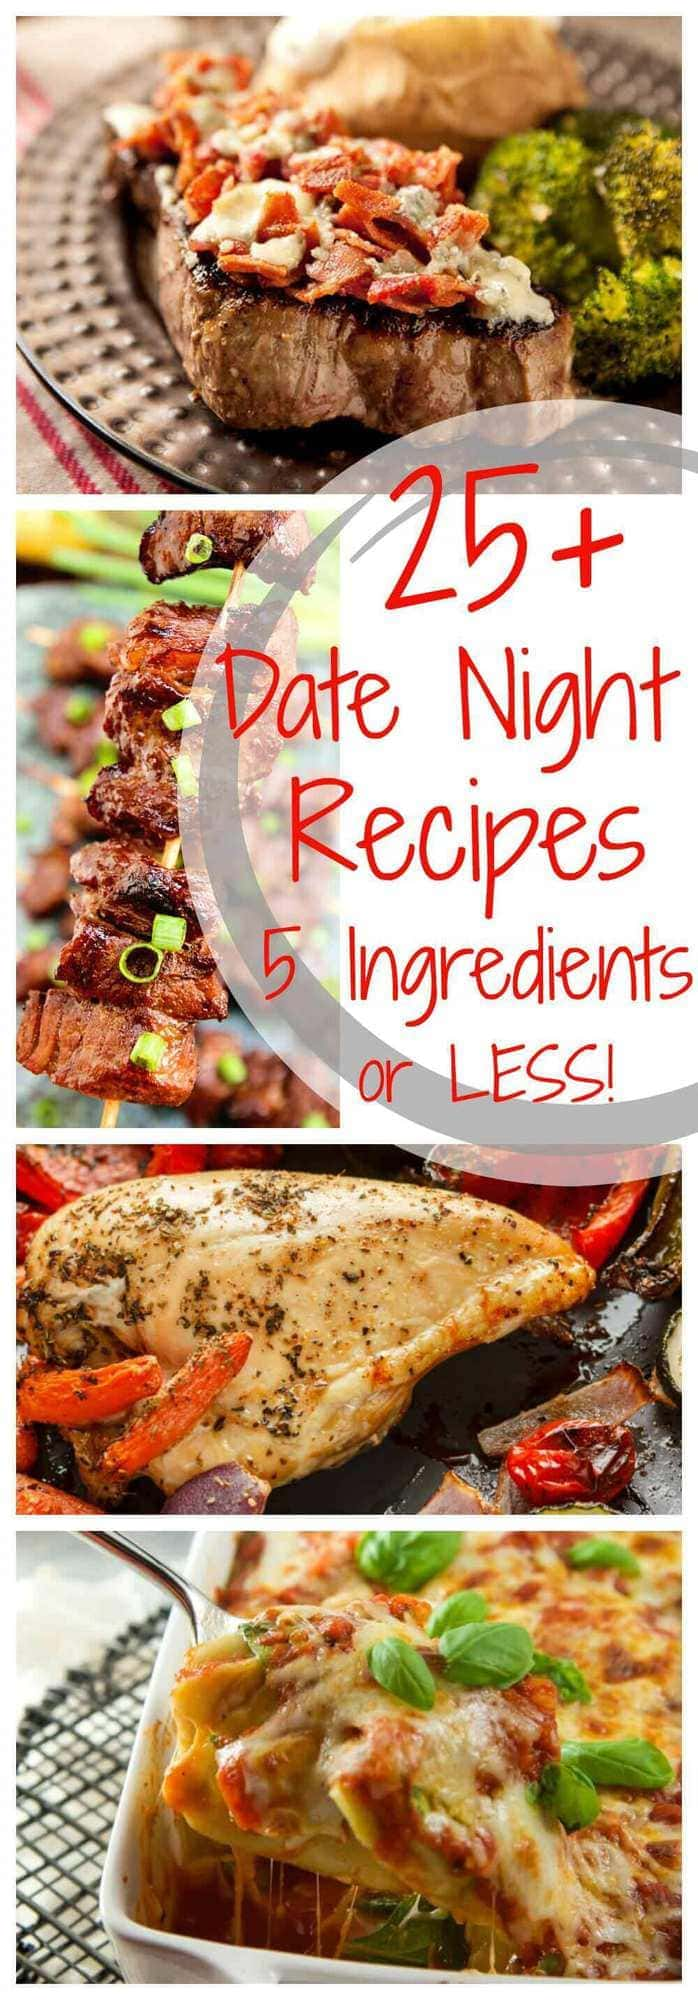 25 delicious date night recipes with 5 ingredients or less